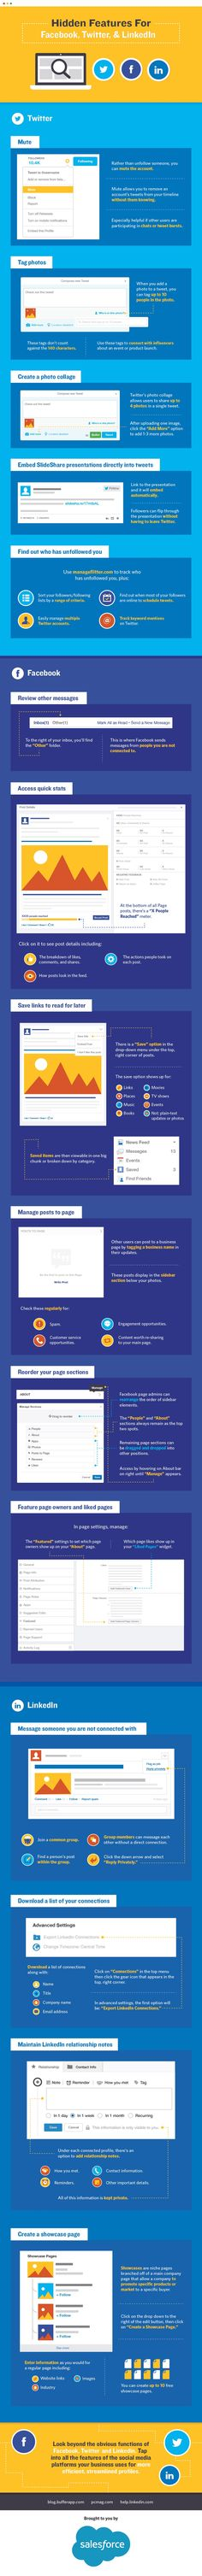 Facebook, Twitter, LinkedIn: Hidden Social Media Features You Should Know - Infographic